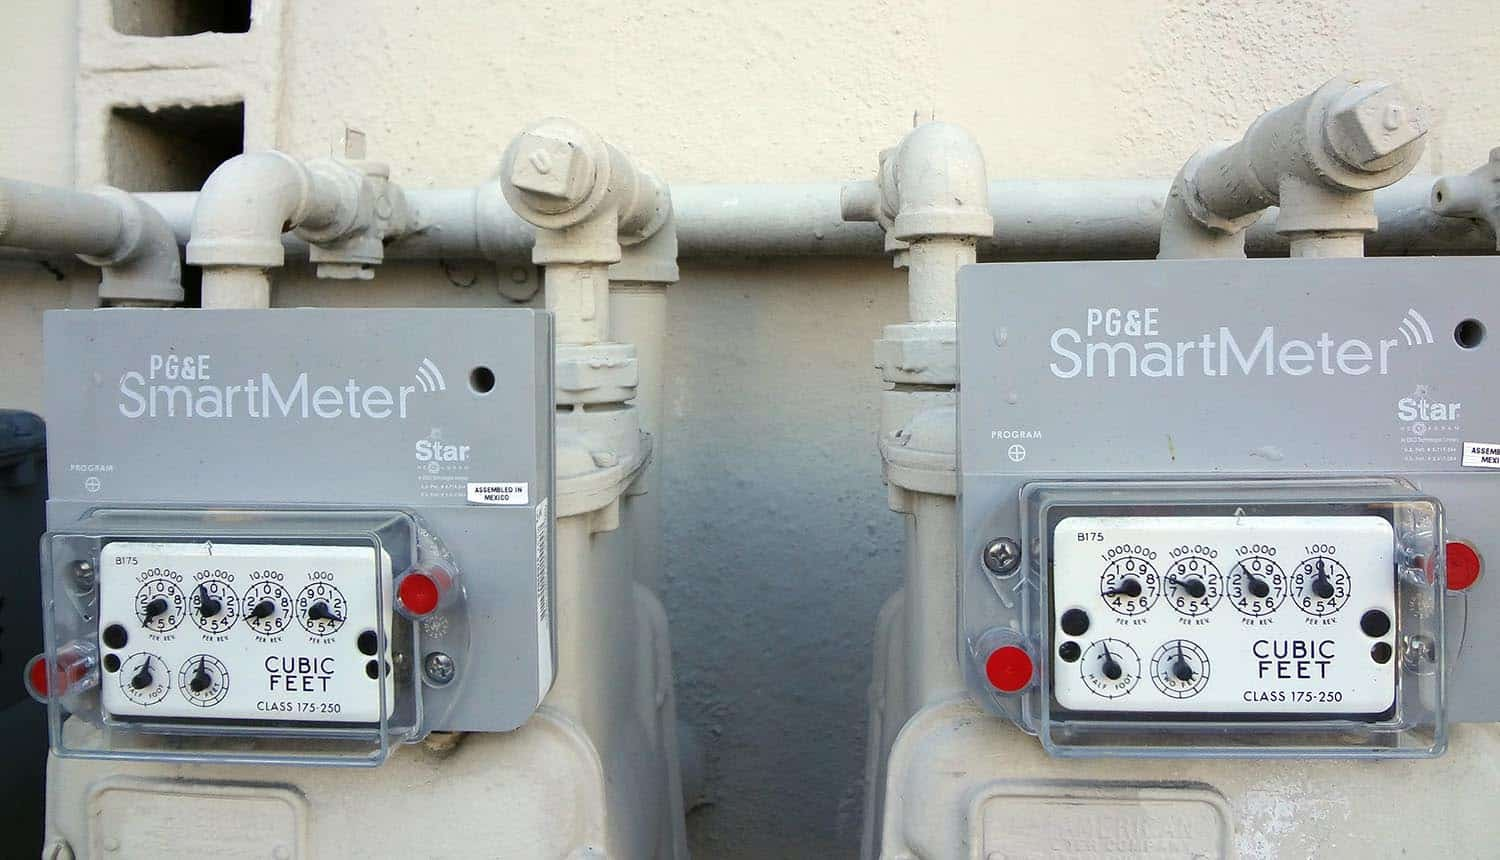 Electricity smart neters on residential building showing connected devices for critical infrastructure